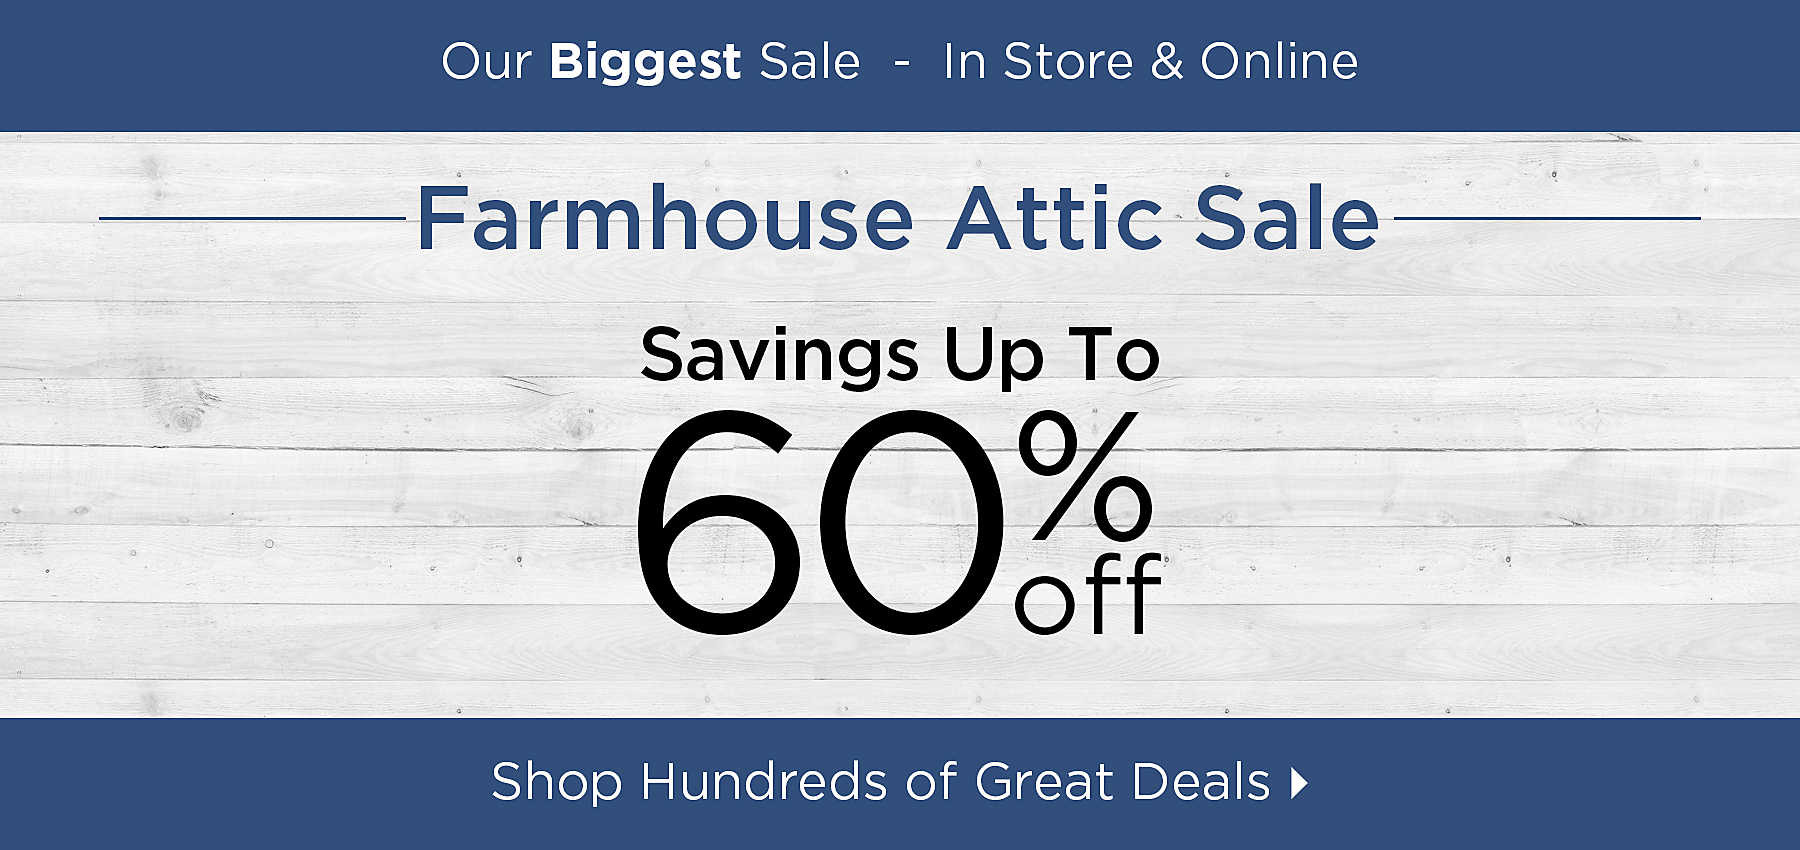 Early Access - Out biggest sale - In store and online - Farmhouse Attic Sale - Savings up to 60% off- Shop Hundreds of Great Deals